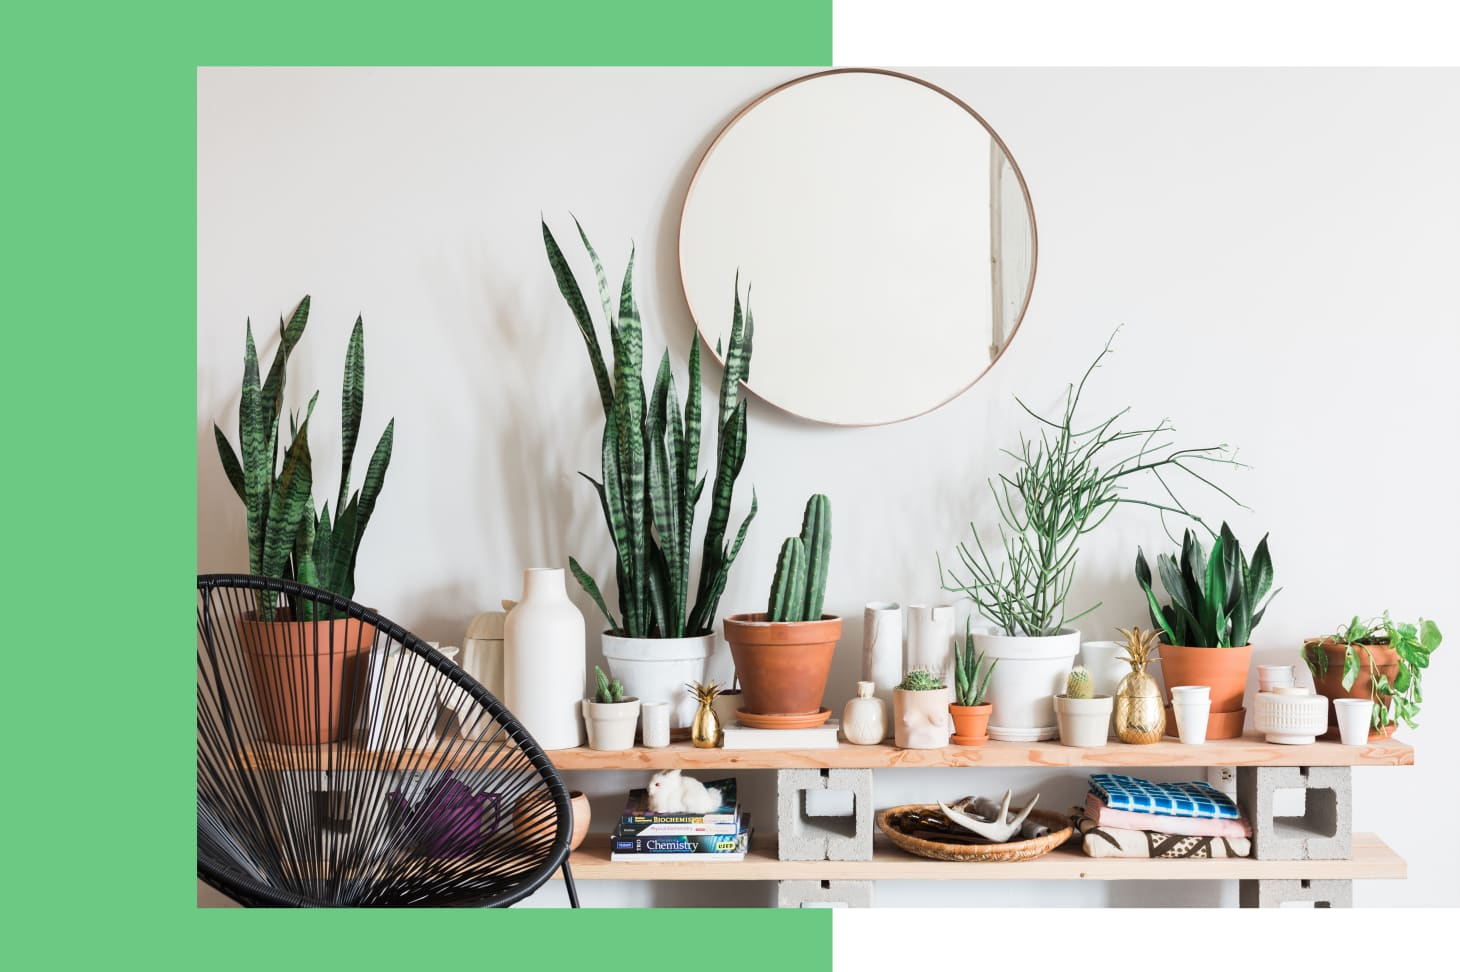 How to Take Care of Plants | Apartment Therapy House Plant Chart on weed chart, house paint chart, house color chart, vegetables chart, fish chart, house cat chart, poisonous plants chart, house garden chart, fern chart, house building chart, flower chart, bird chart, house animals chart, apple chart, herb chart,